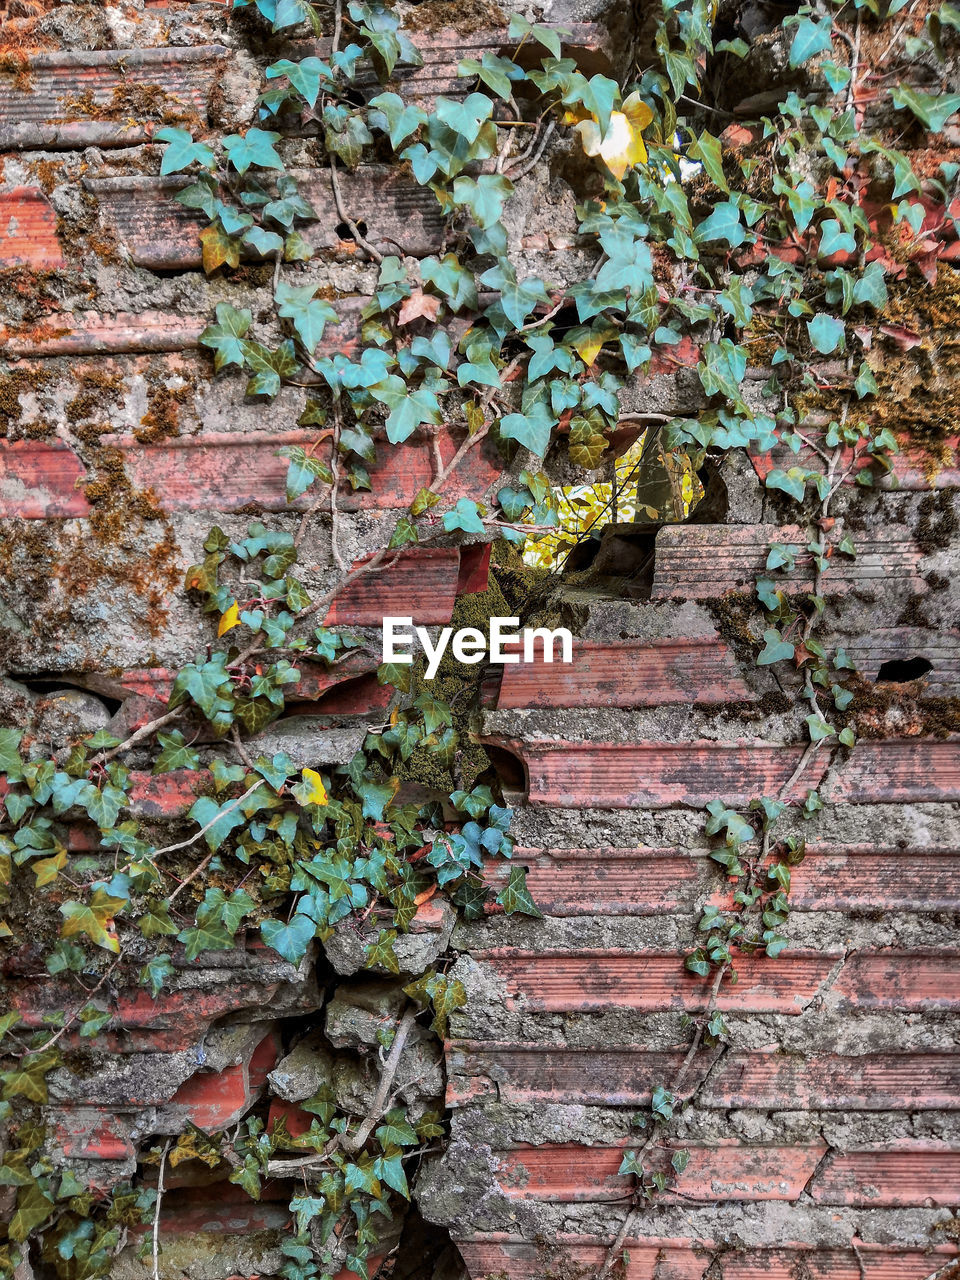 wall, brick wall, ivy, brick, built structure, wall - building feature, plant, architecture, day, no people, creeper plant, growth, plant part, leaf, weathered, nature, outdoors, building exterior, green color, old, deterioration, stone wall